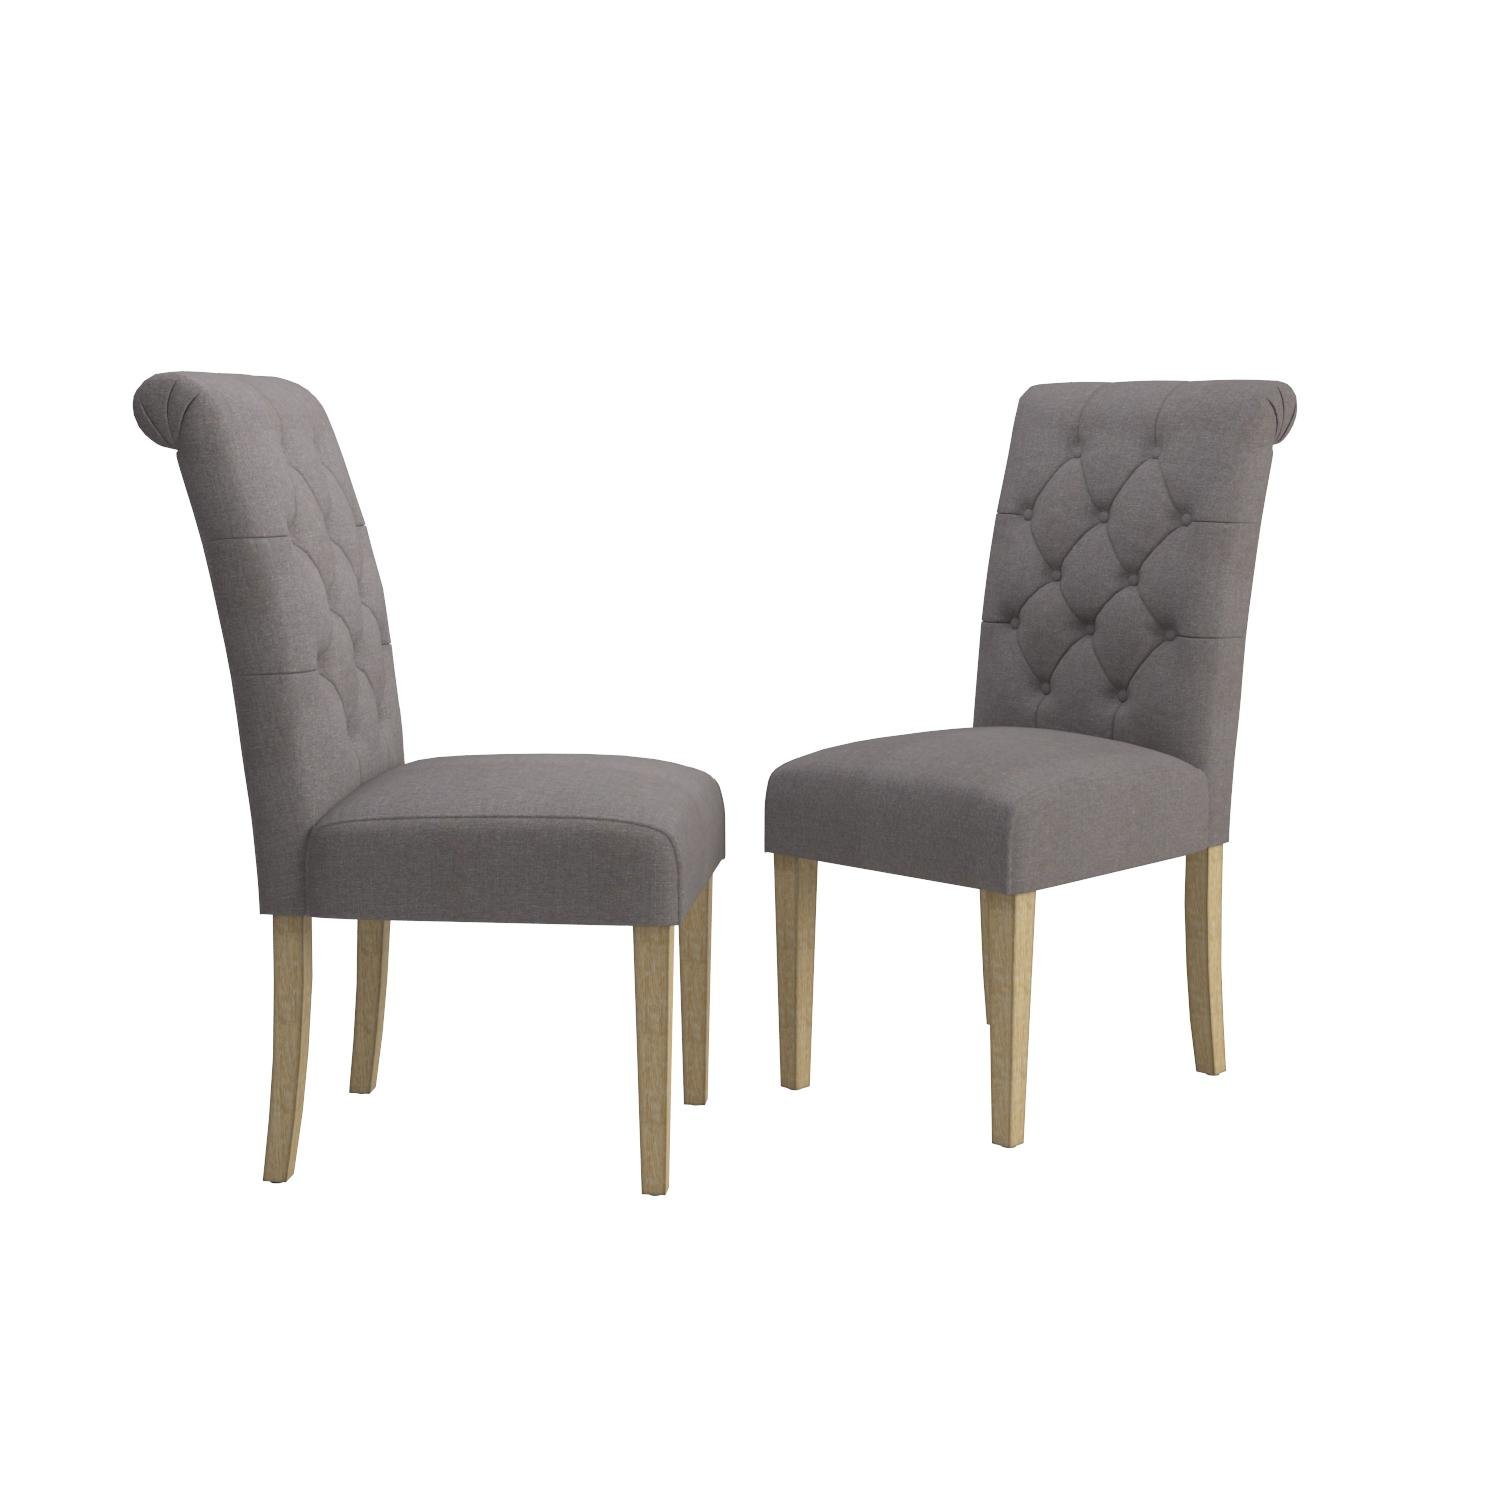 Roundhill Furniture Habit Grey Solid Wood Tufted Parsons Dining Chair (Set of 2), Gray by Roundhill Furniture (Image #9)